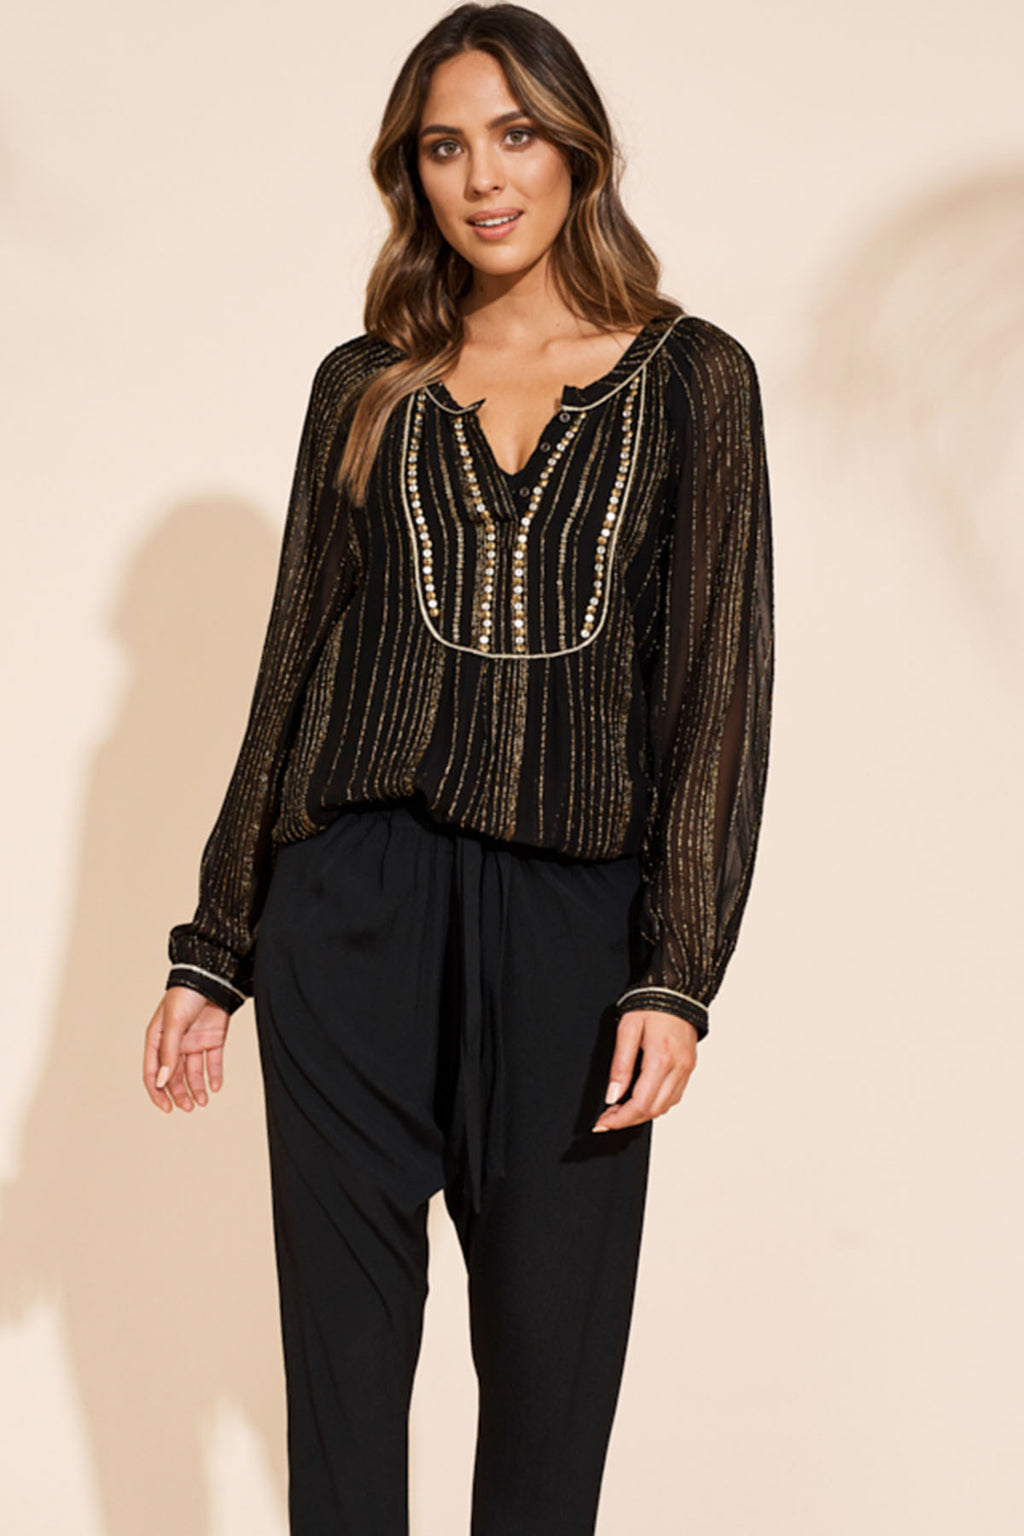 Etosha Blouse - Black Gold - The Bohemian Corner